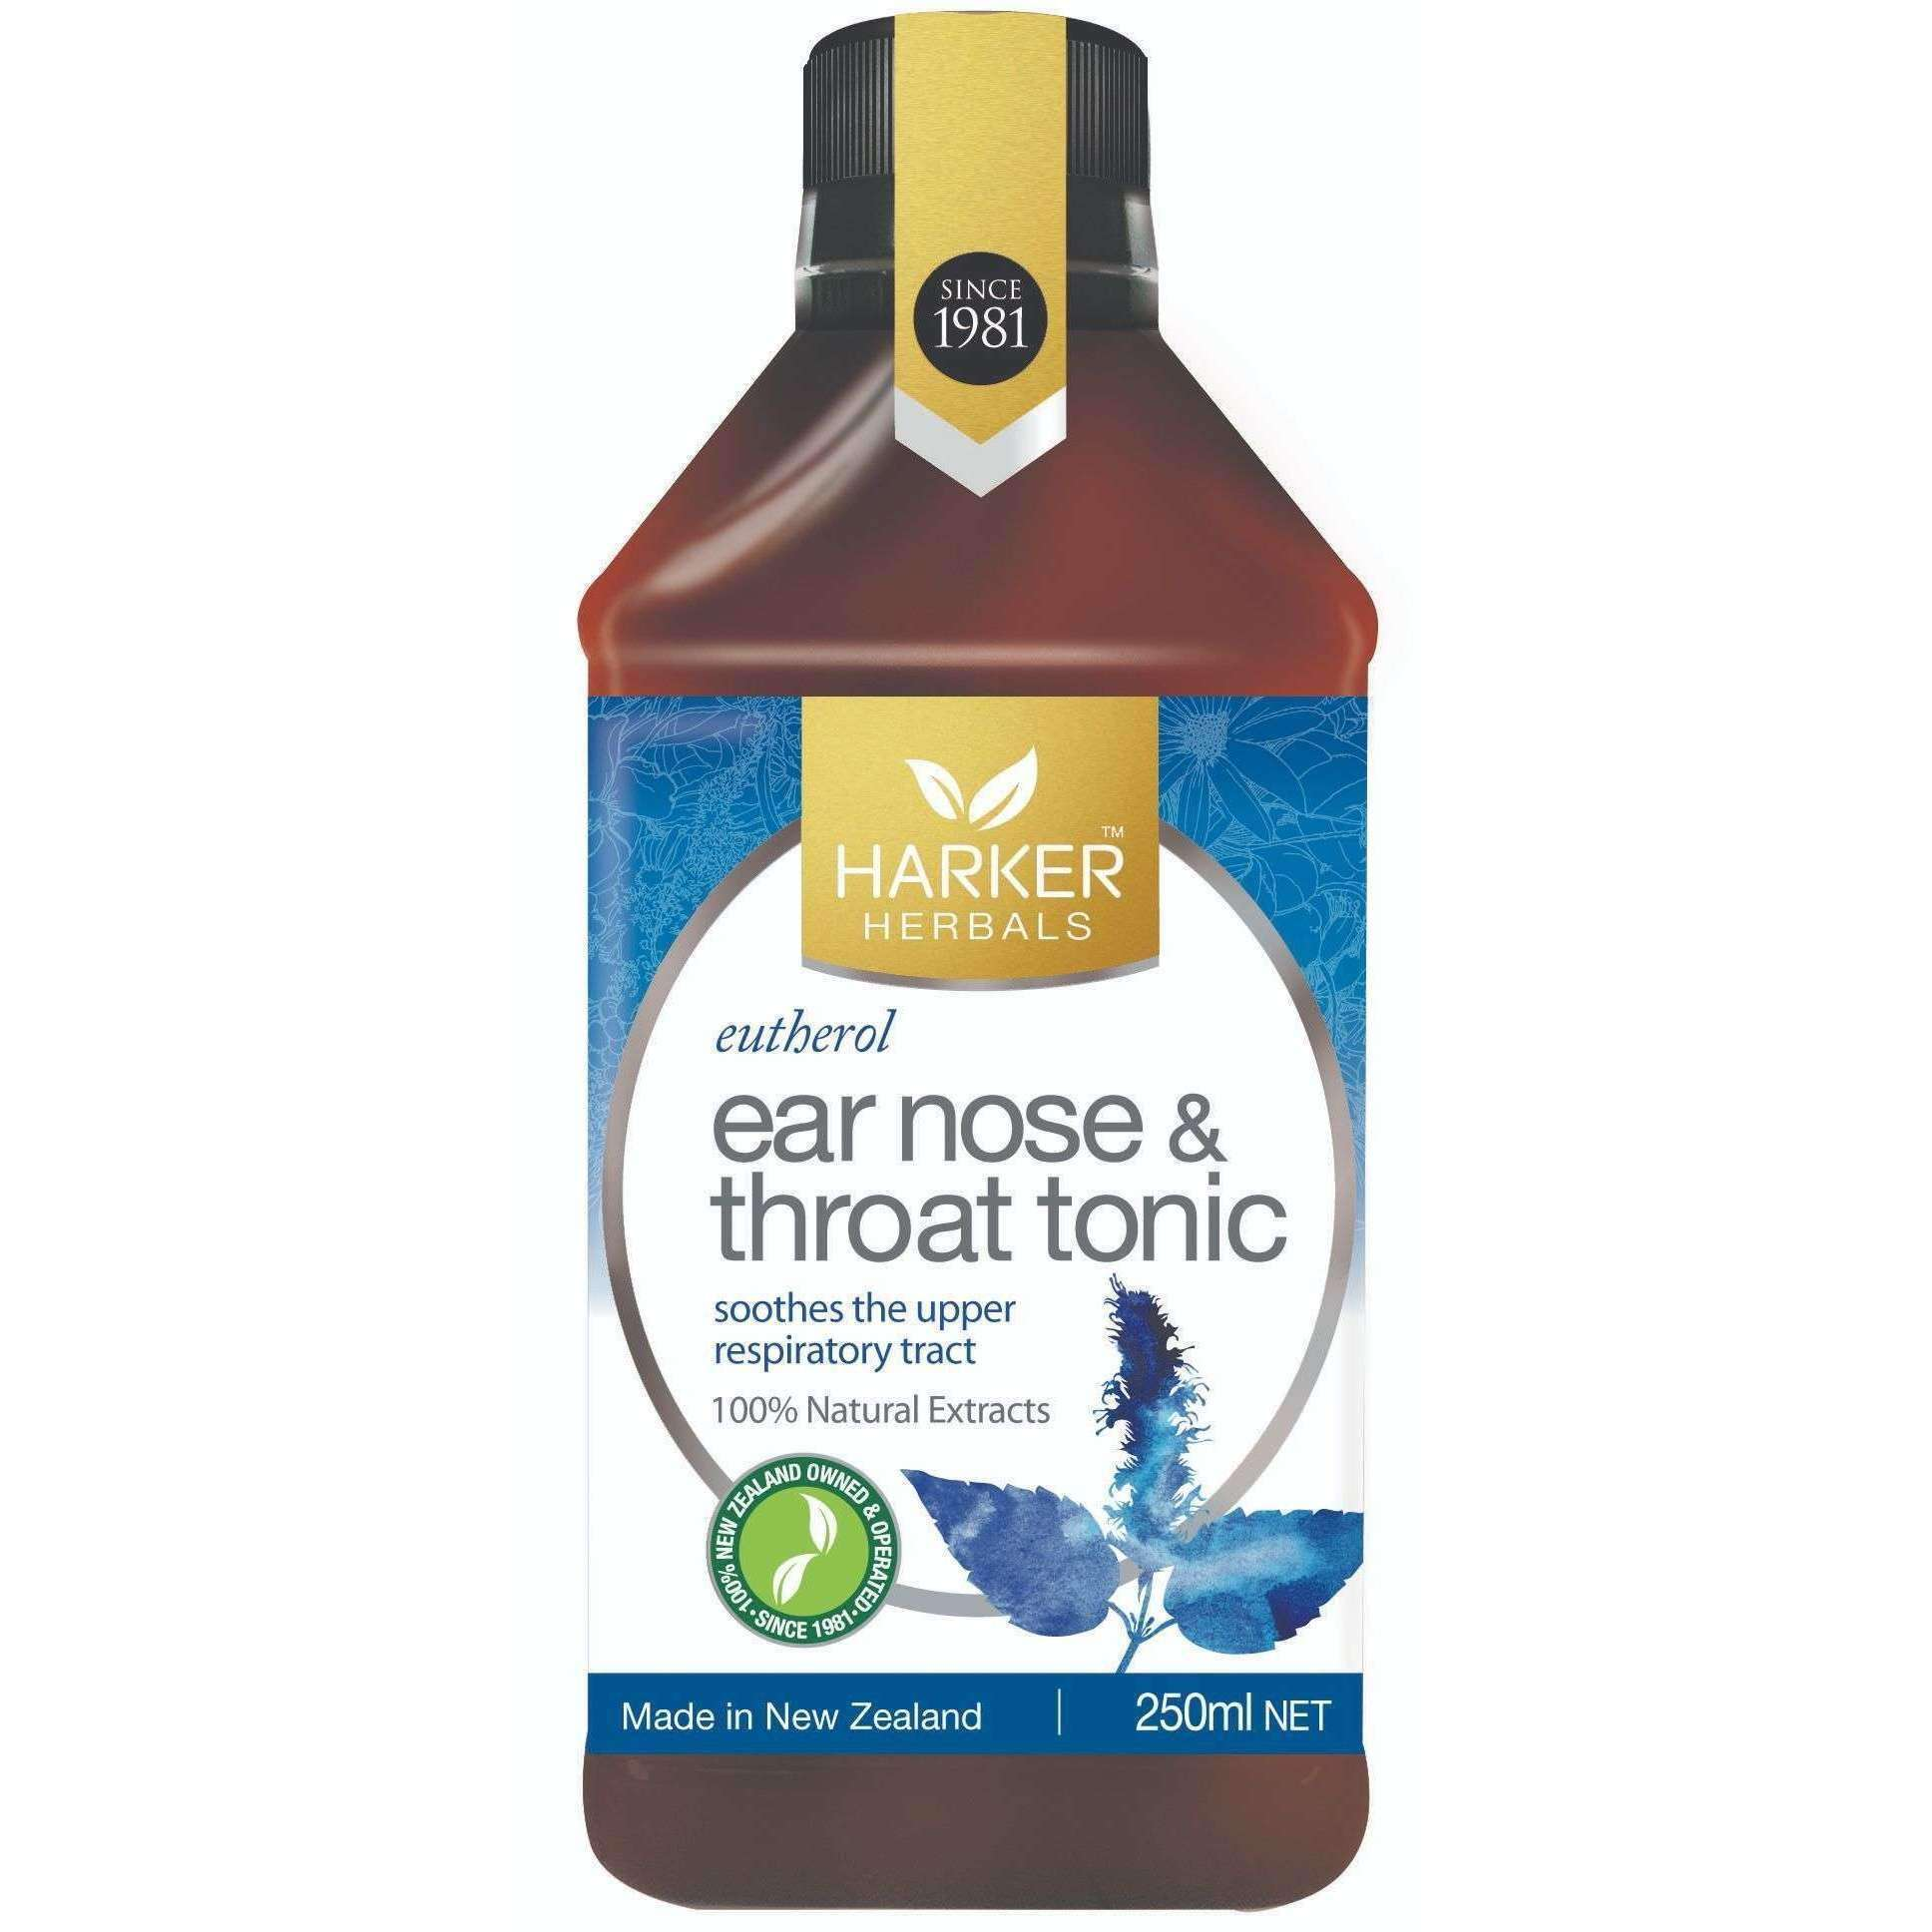 Eutherol Ear Nose & Throat Tonic